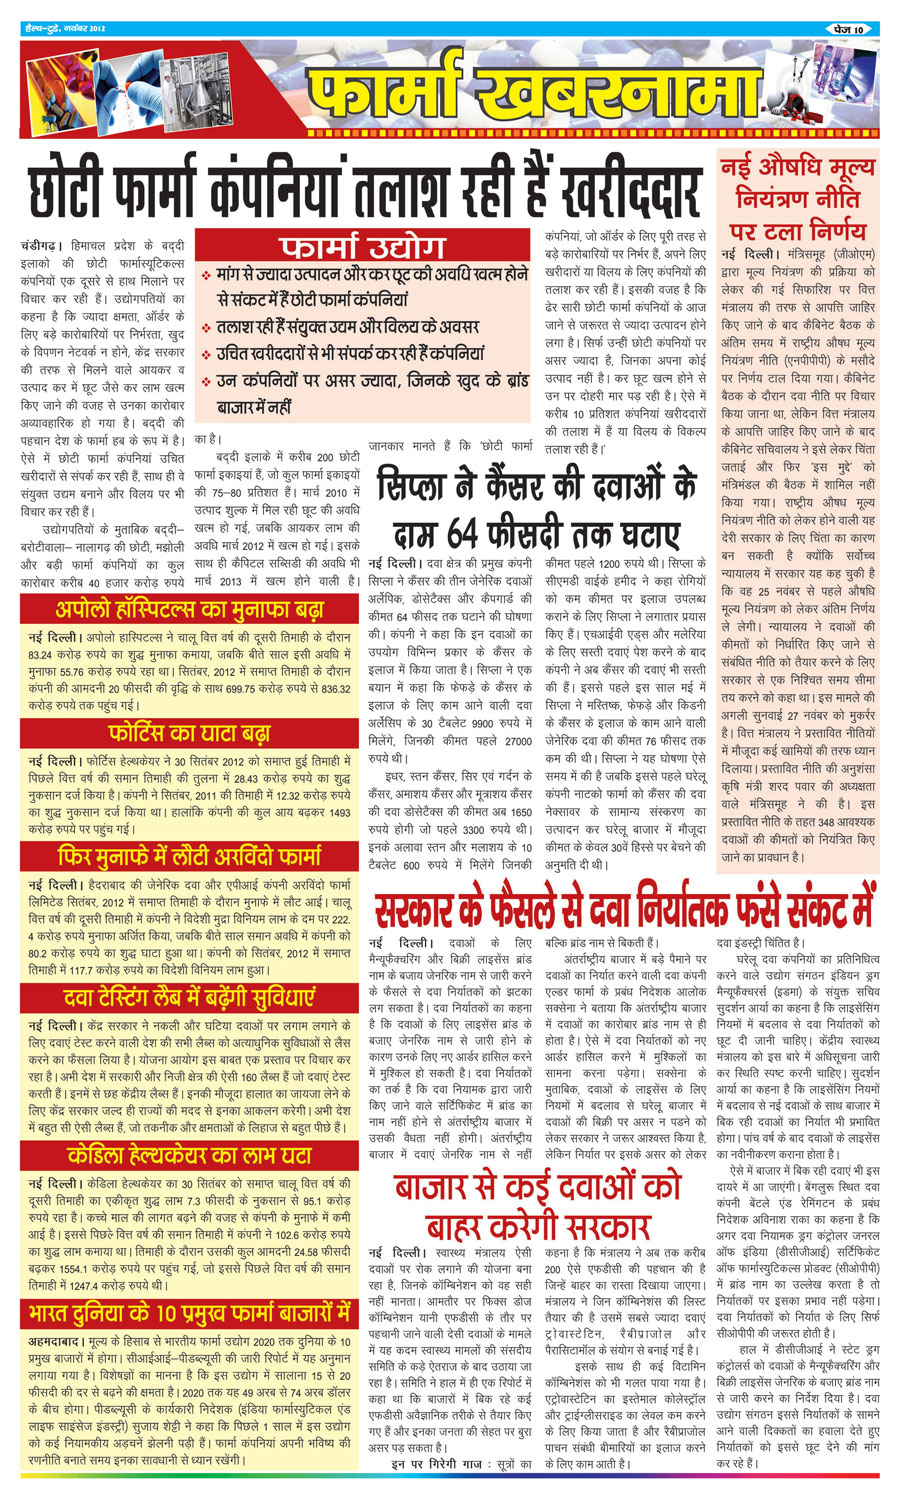 pharma news hindi pharma story medical health top pharma